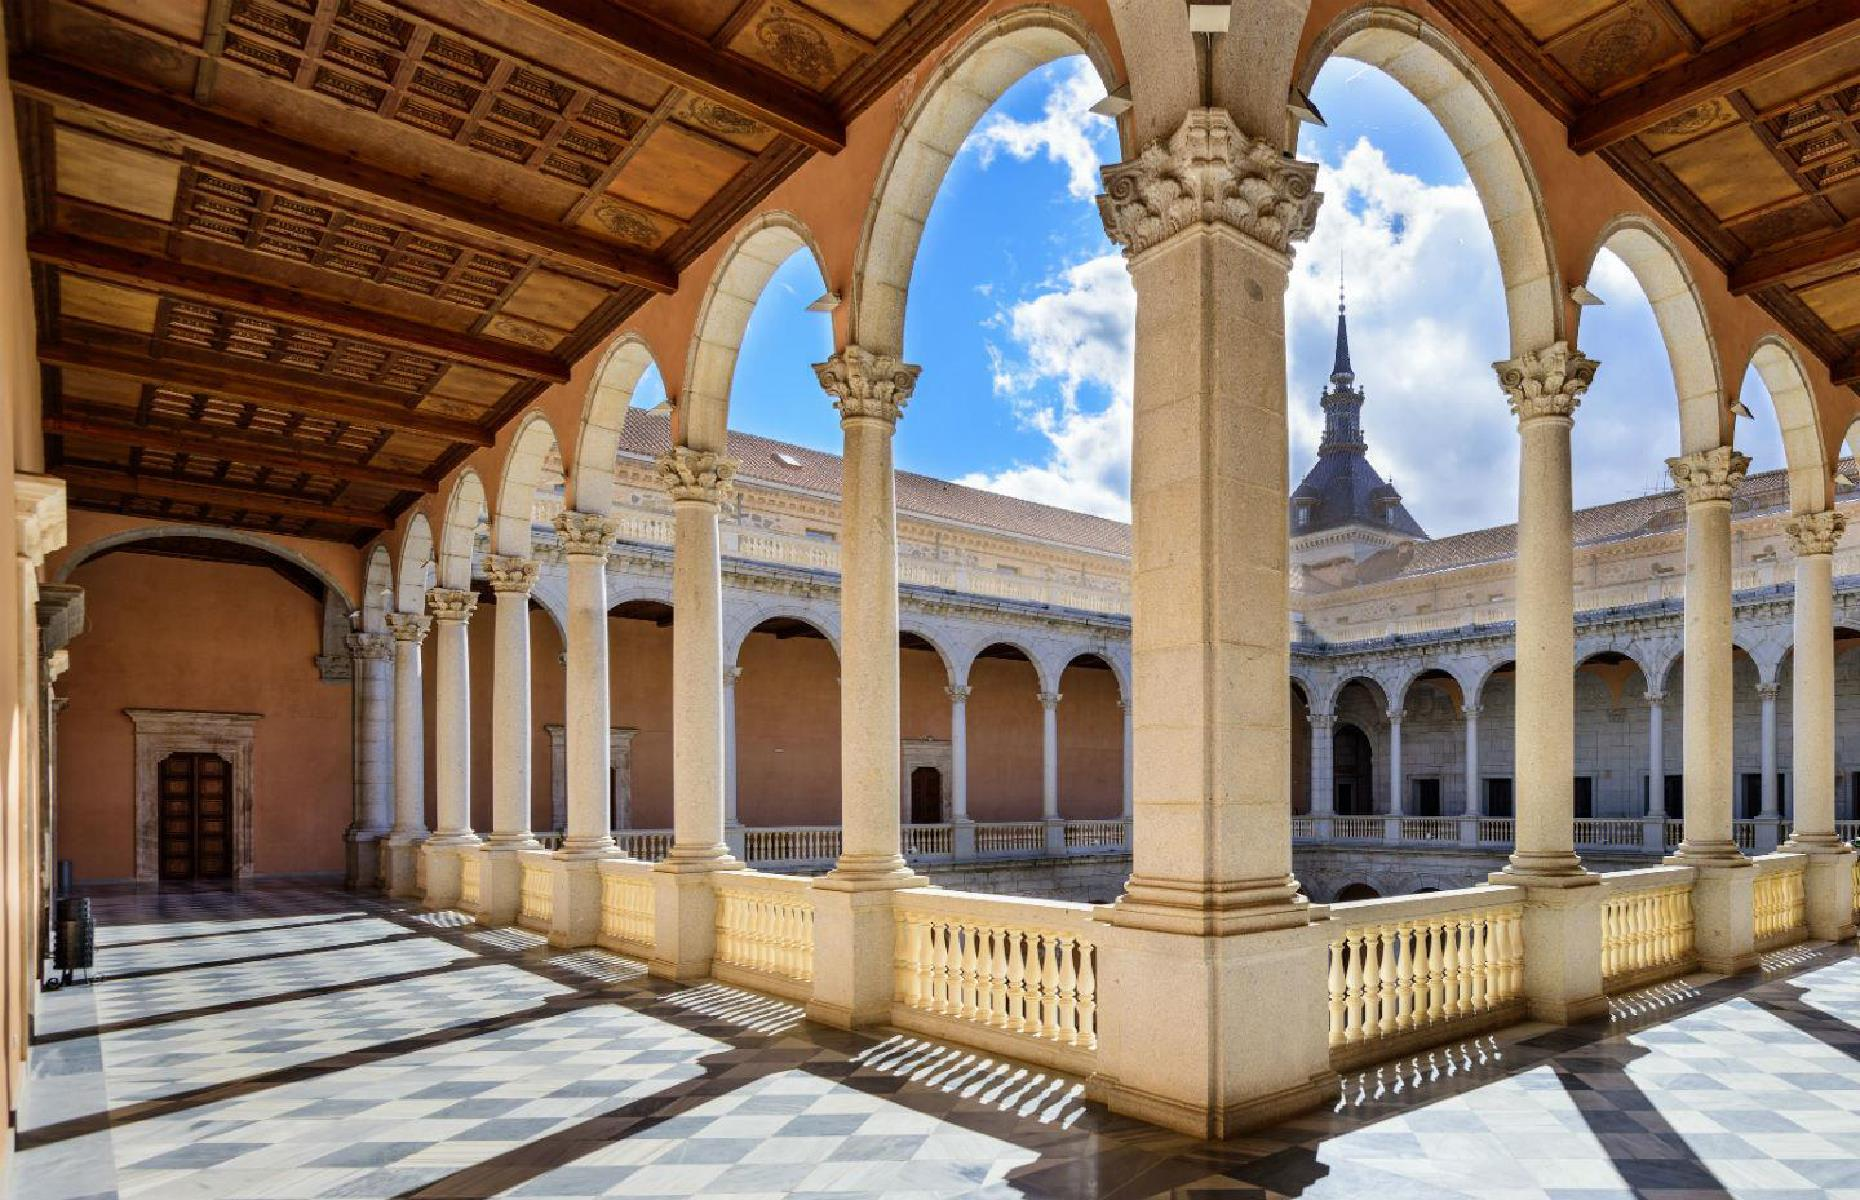 Slide 5 of 61: The Alcázar was painstakingly rebuilt and restored throughout the 1940s and is now the site of the Castilla-La Mancha Regional Library and a military museum. The light-drenched interior courtyard is one of the most beautiful parts of the site.